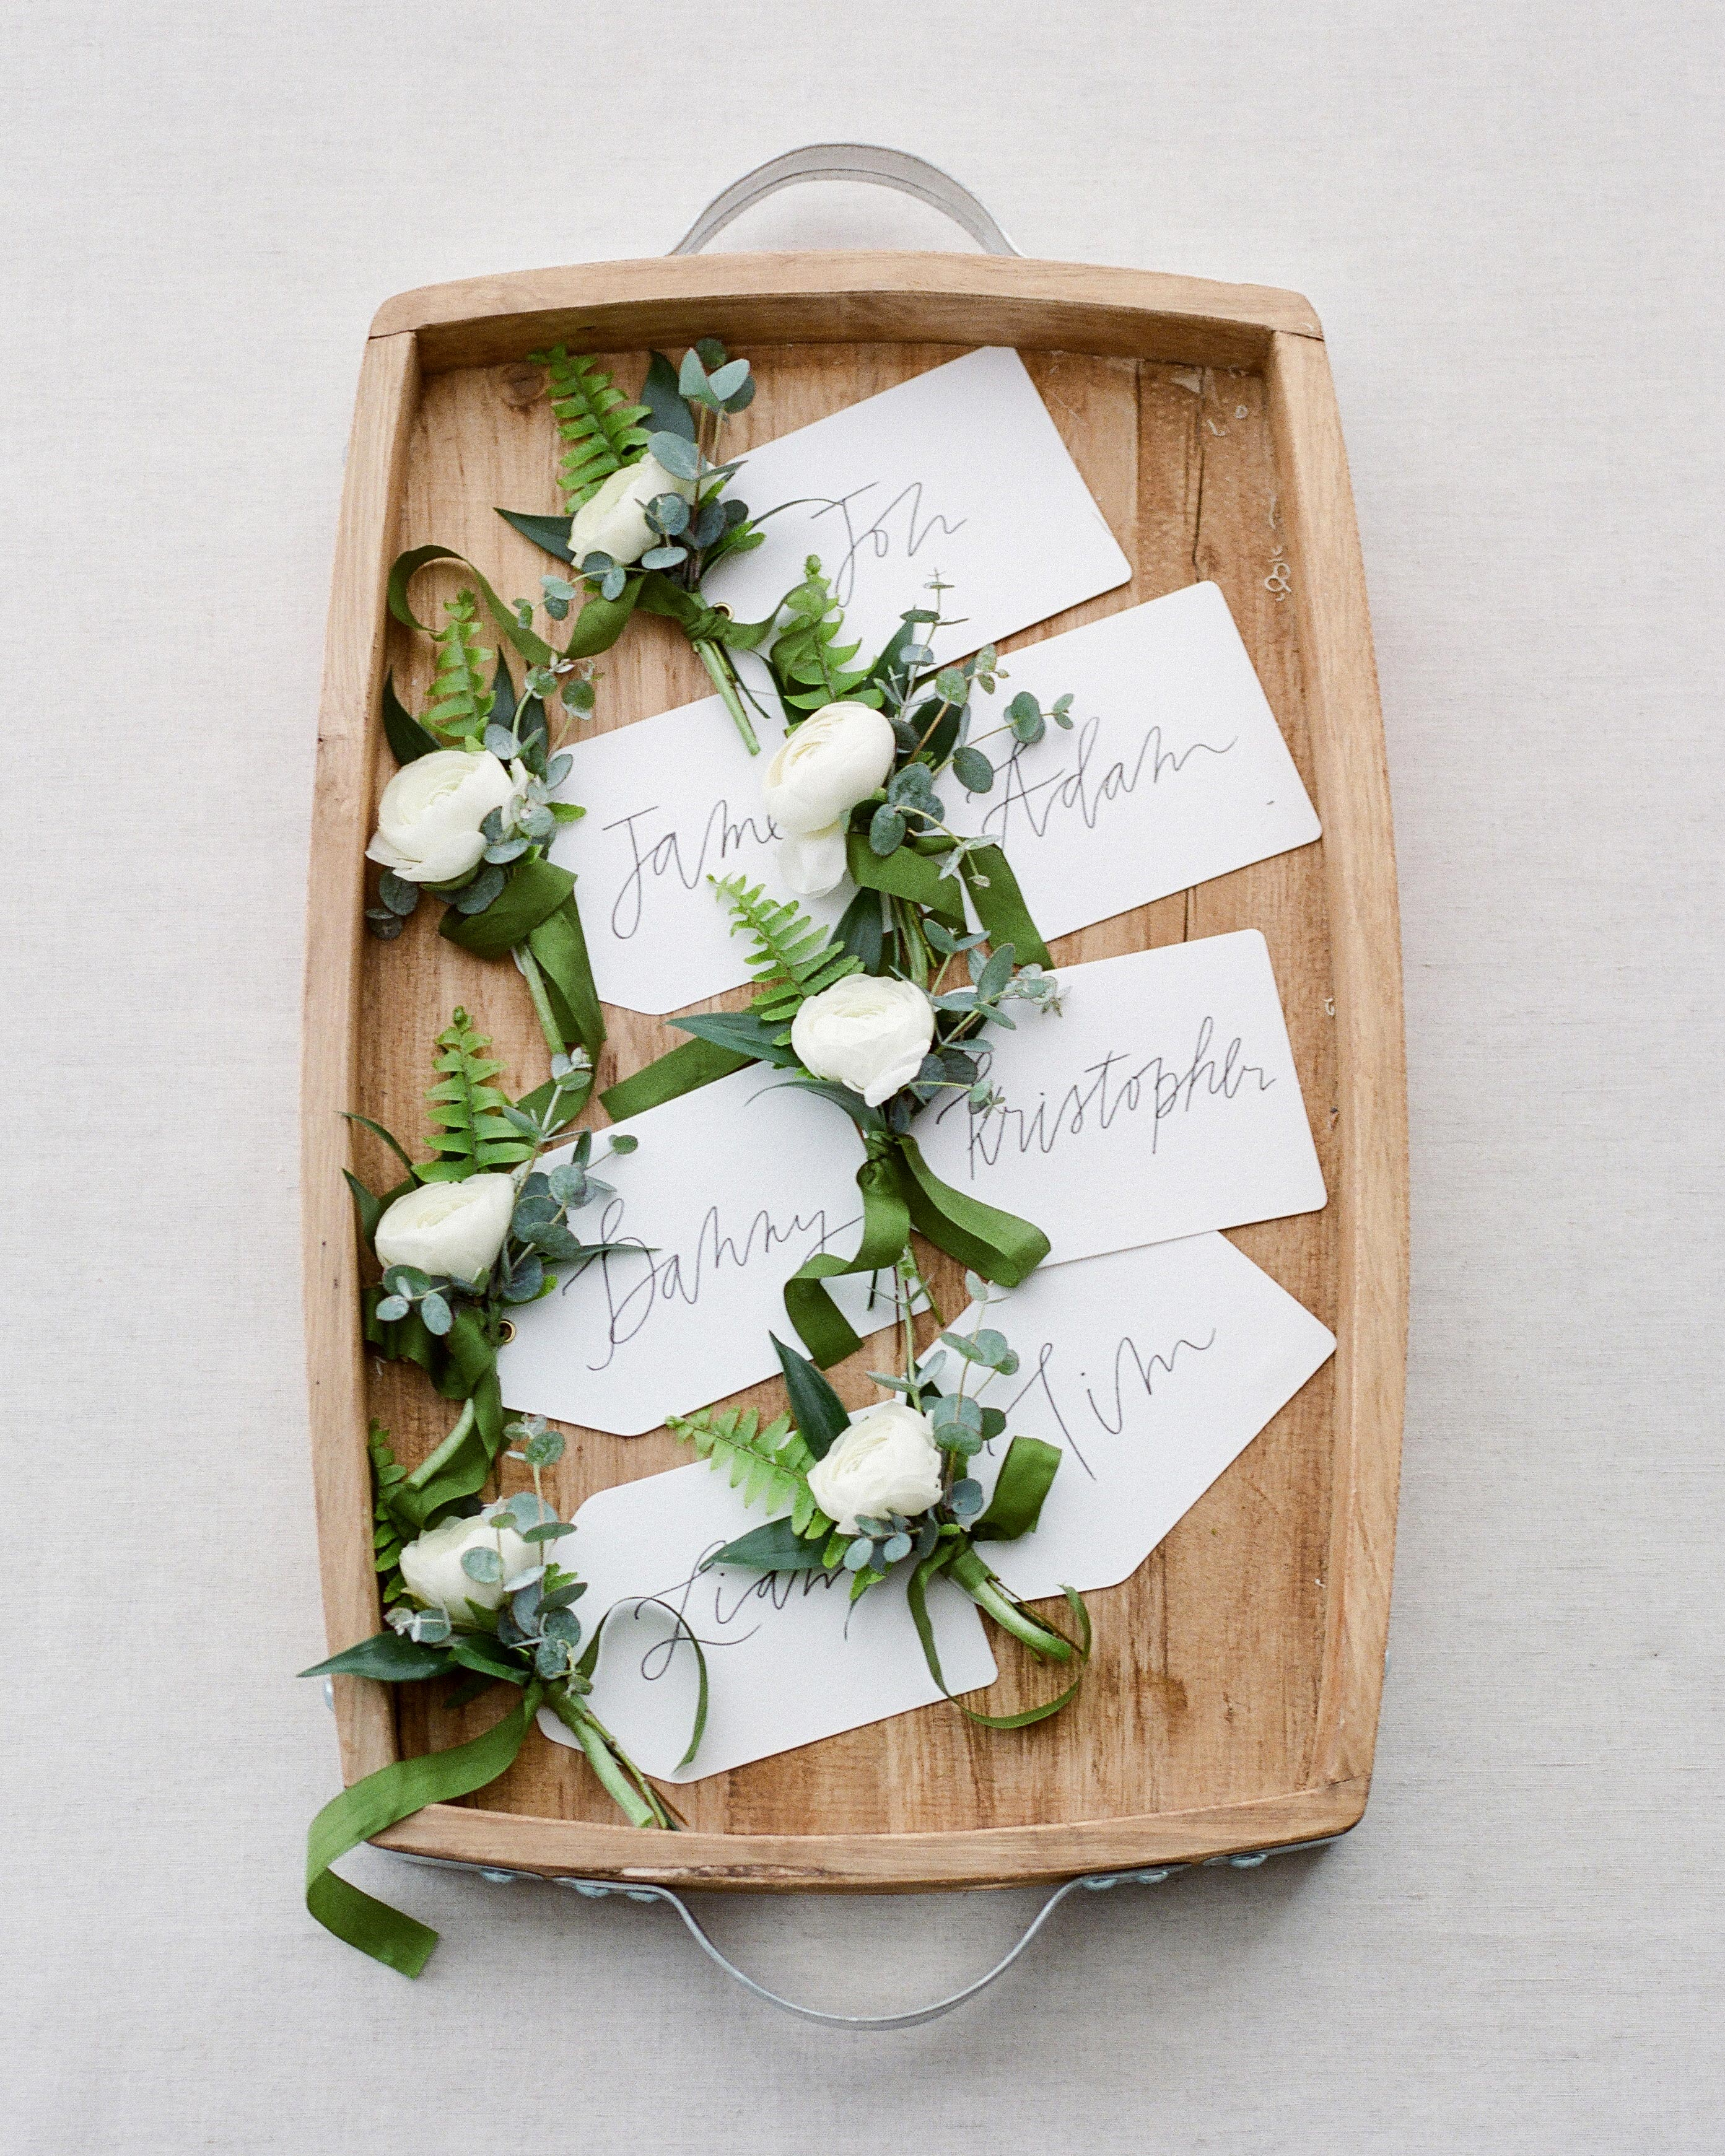 chrissy and jons wedding boutonnieres